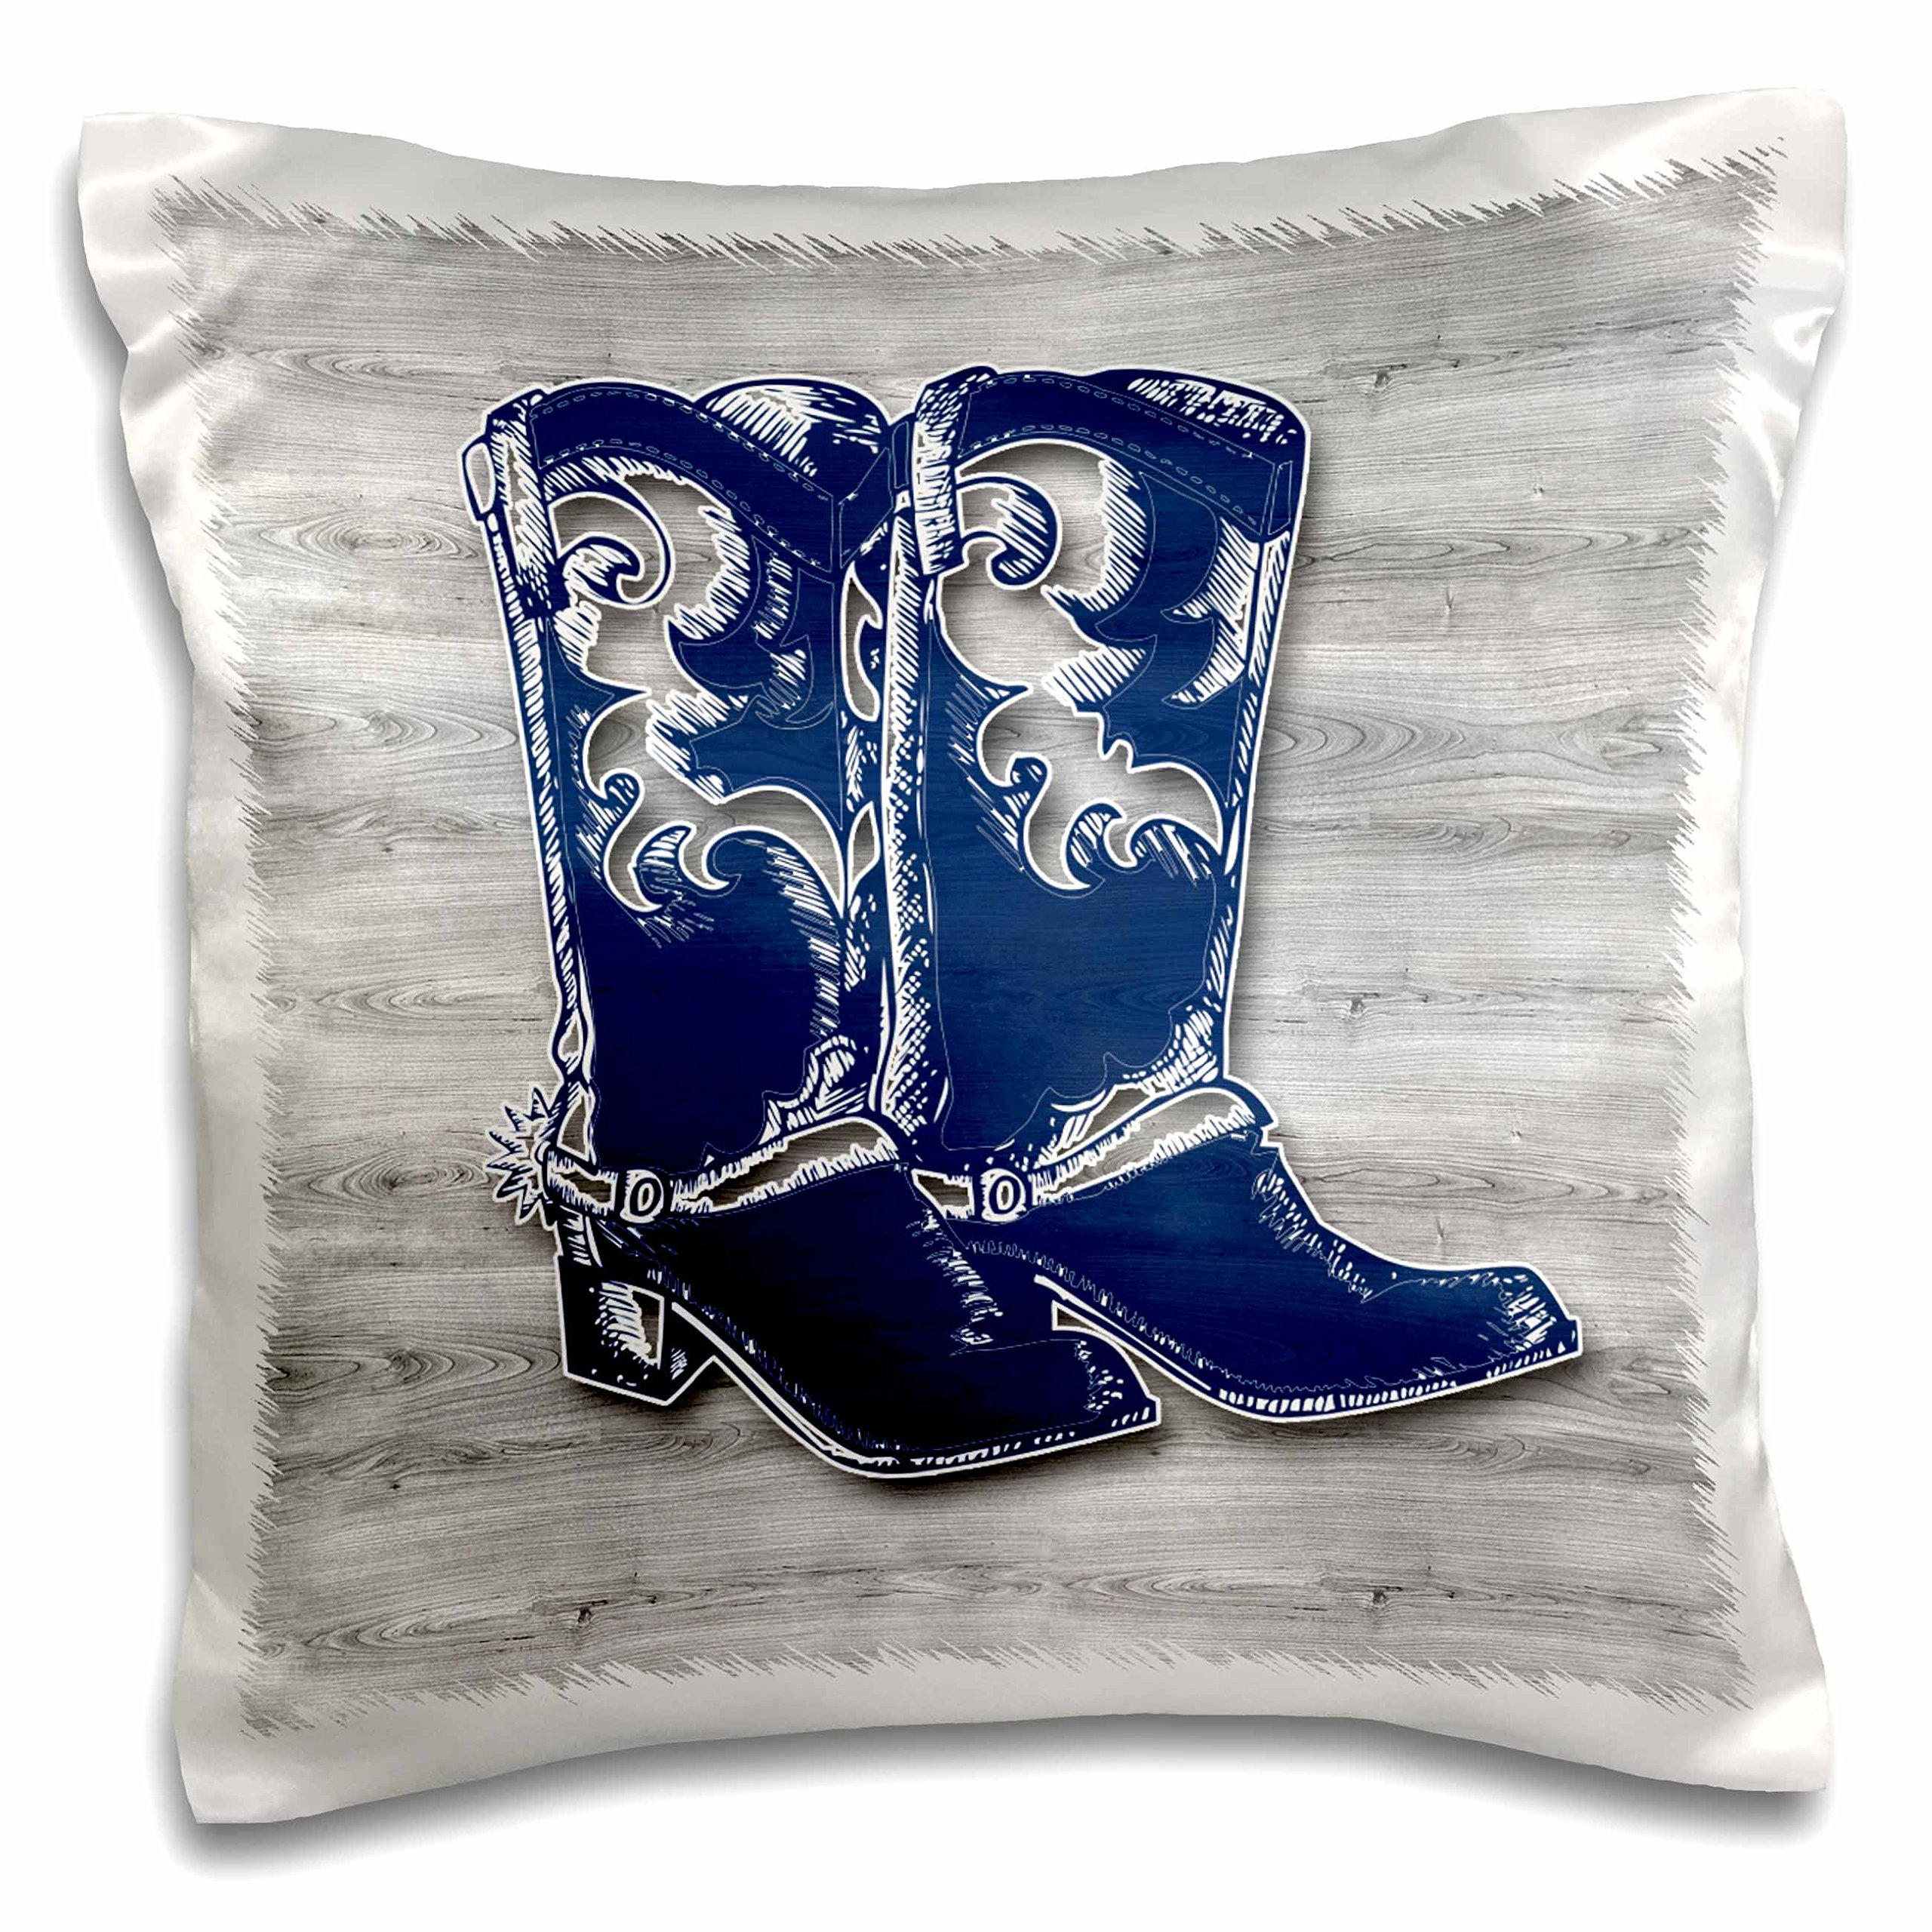 3dRose Pair of Cowboy Boots for Western Theme in Blue and Gray Wood Patterns Pillow Case, 16 x 16''